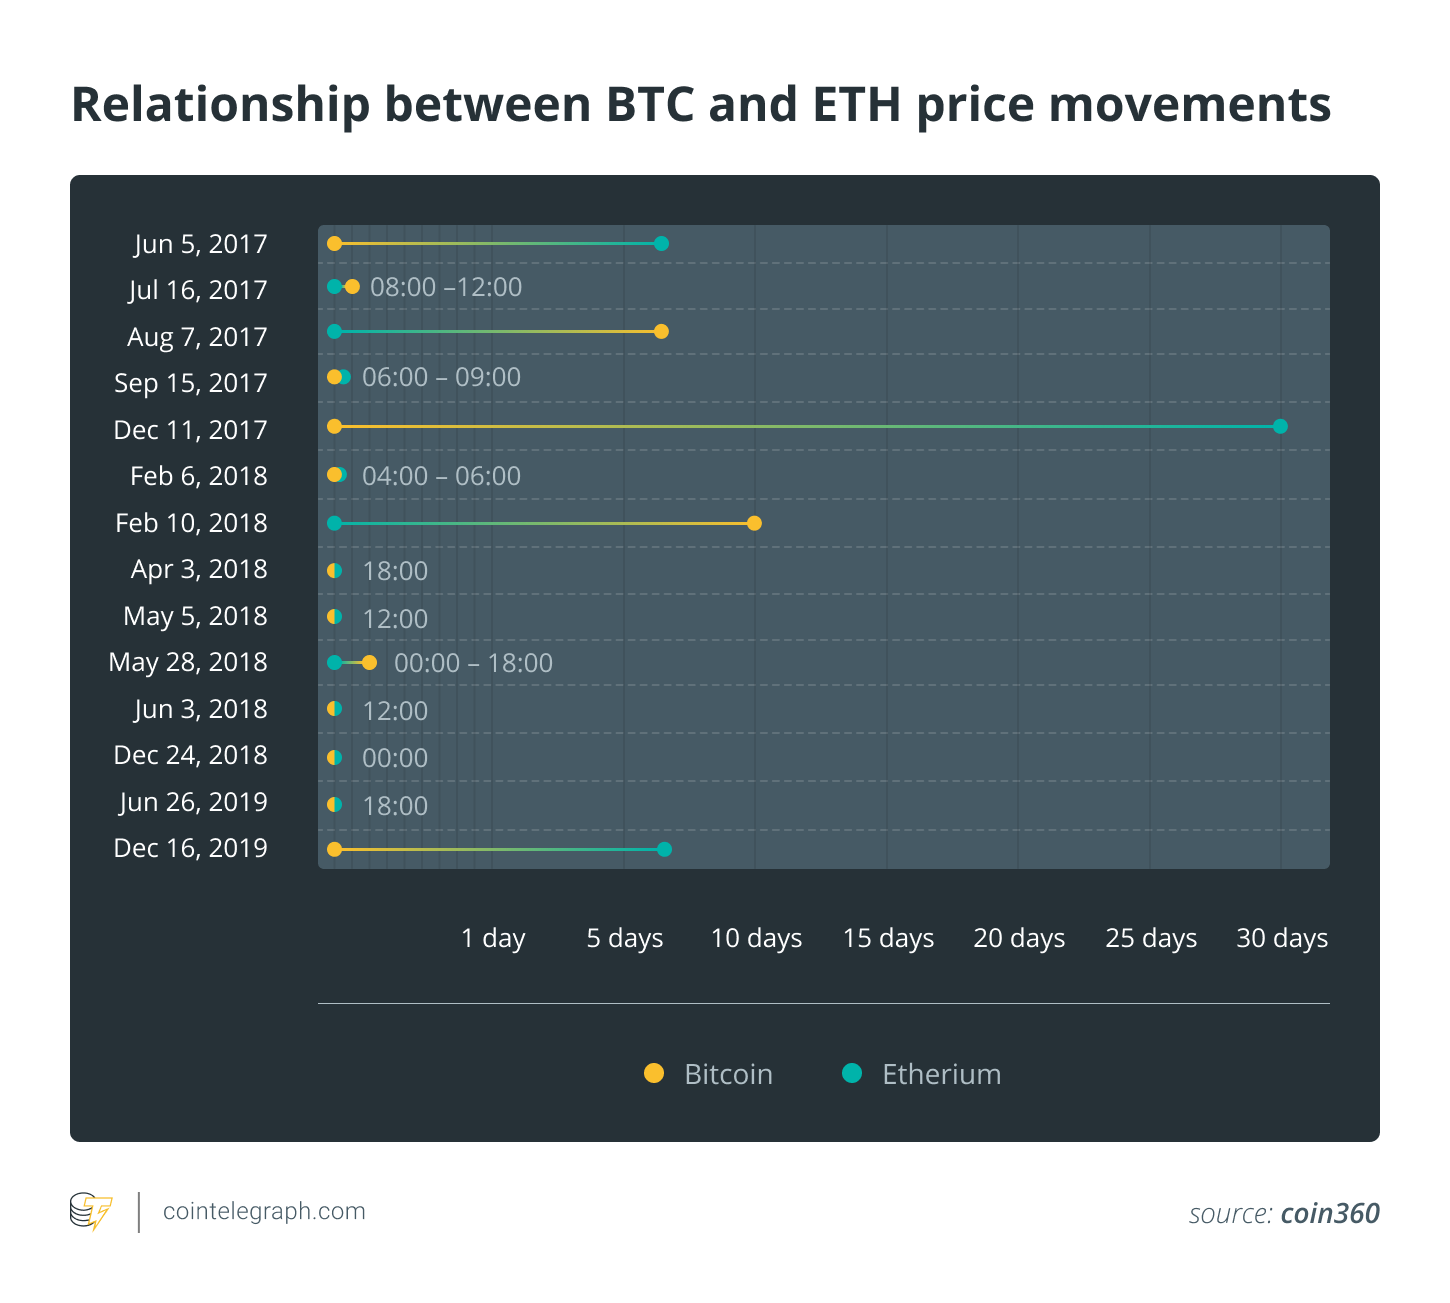 Relationship between BTC and ETH price movements